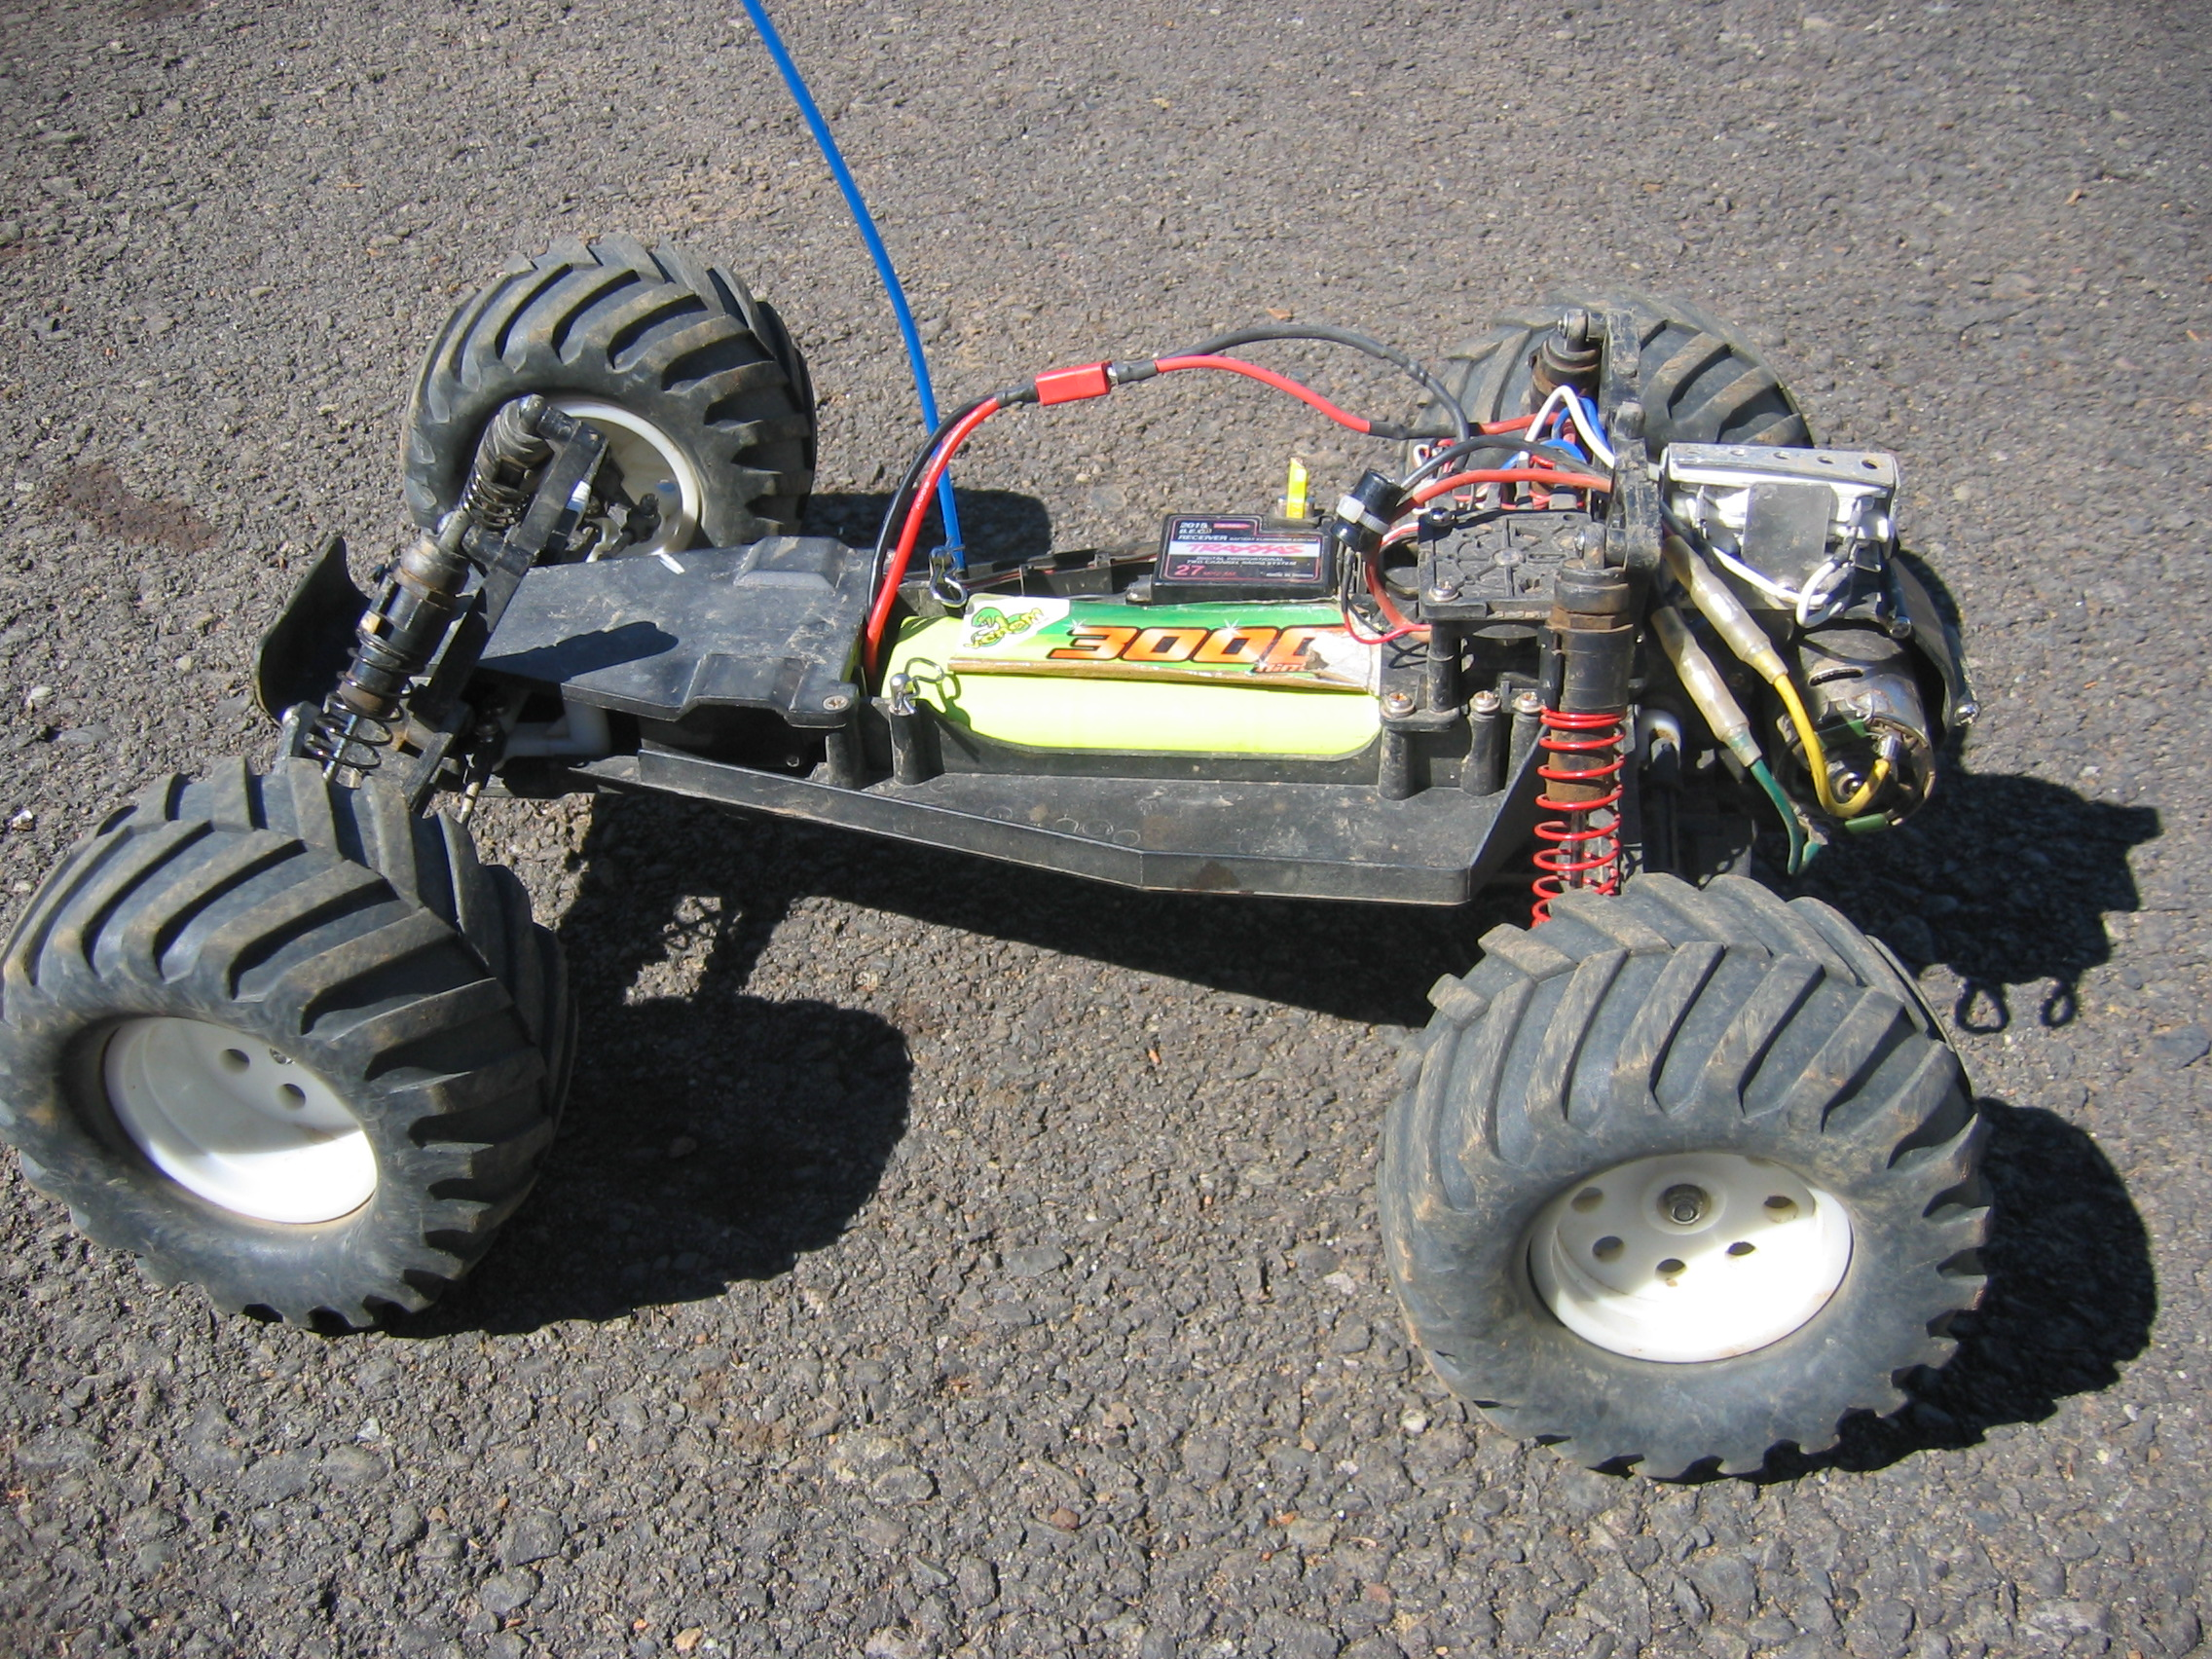 A Traxxas Electric Rustler A Rear Wheel Drive Stadium Truck without body